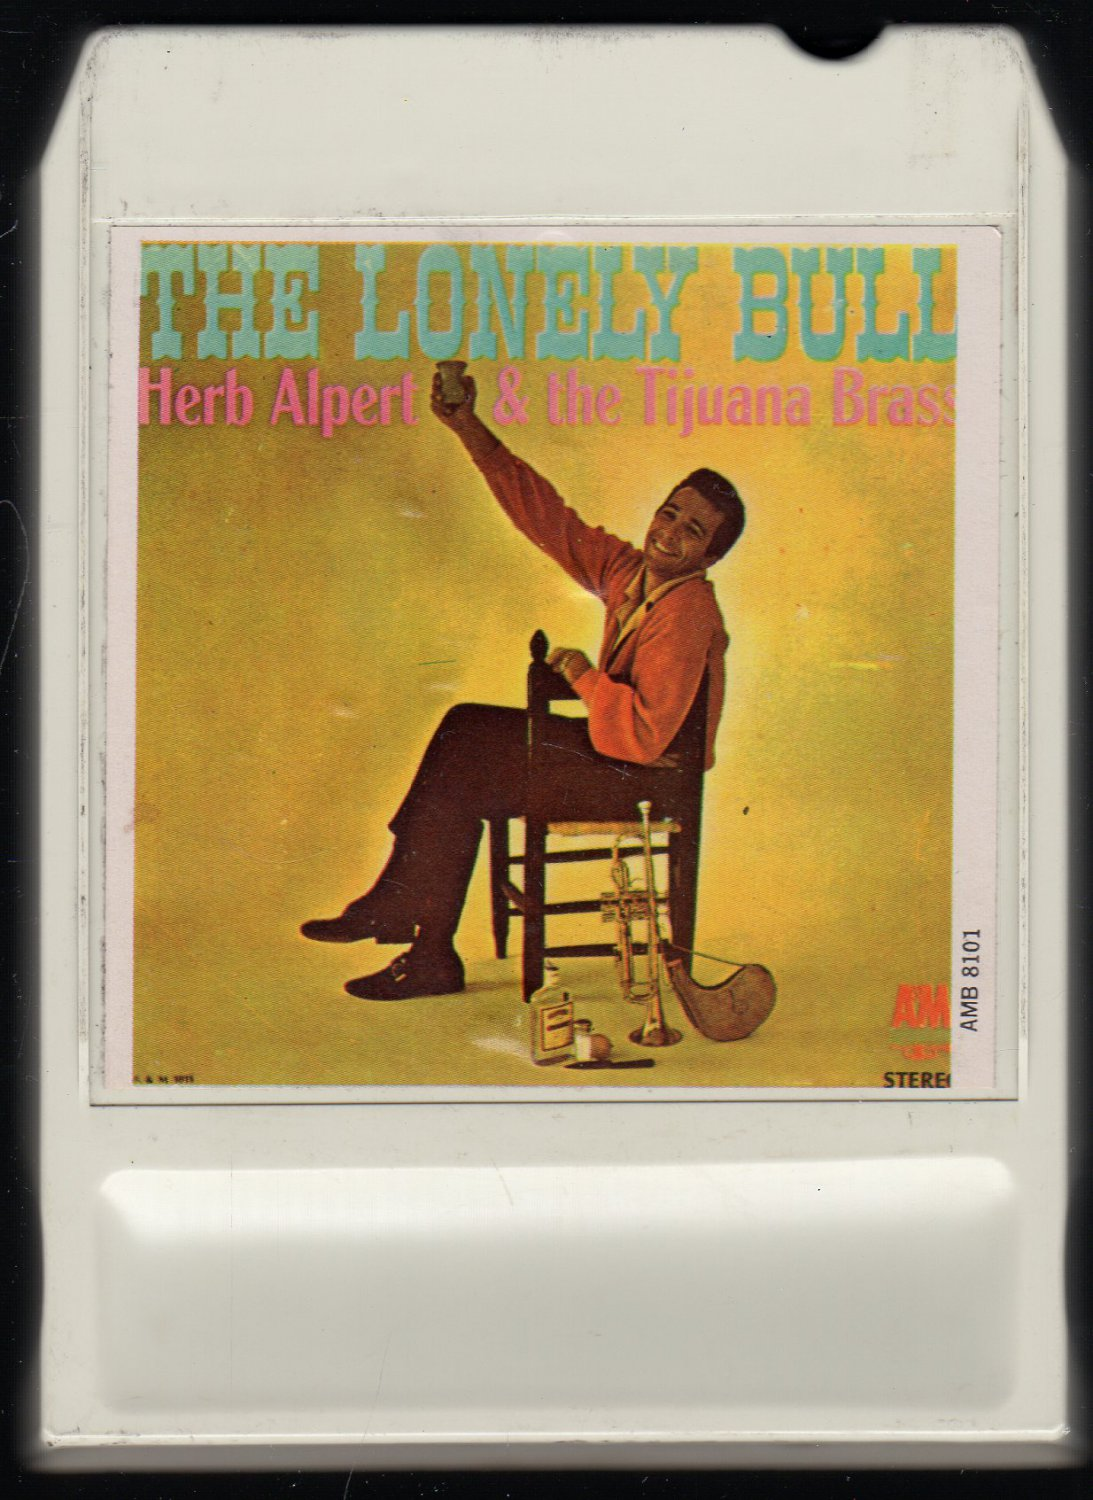 Herb Alpert & The Tijuana Brass - The Lonely Bull 1962 Debut A&M AMPEX LEAR A44 8-track tape